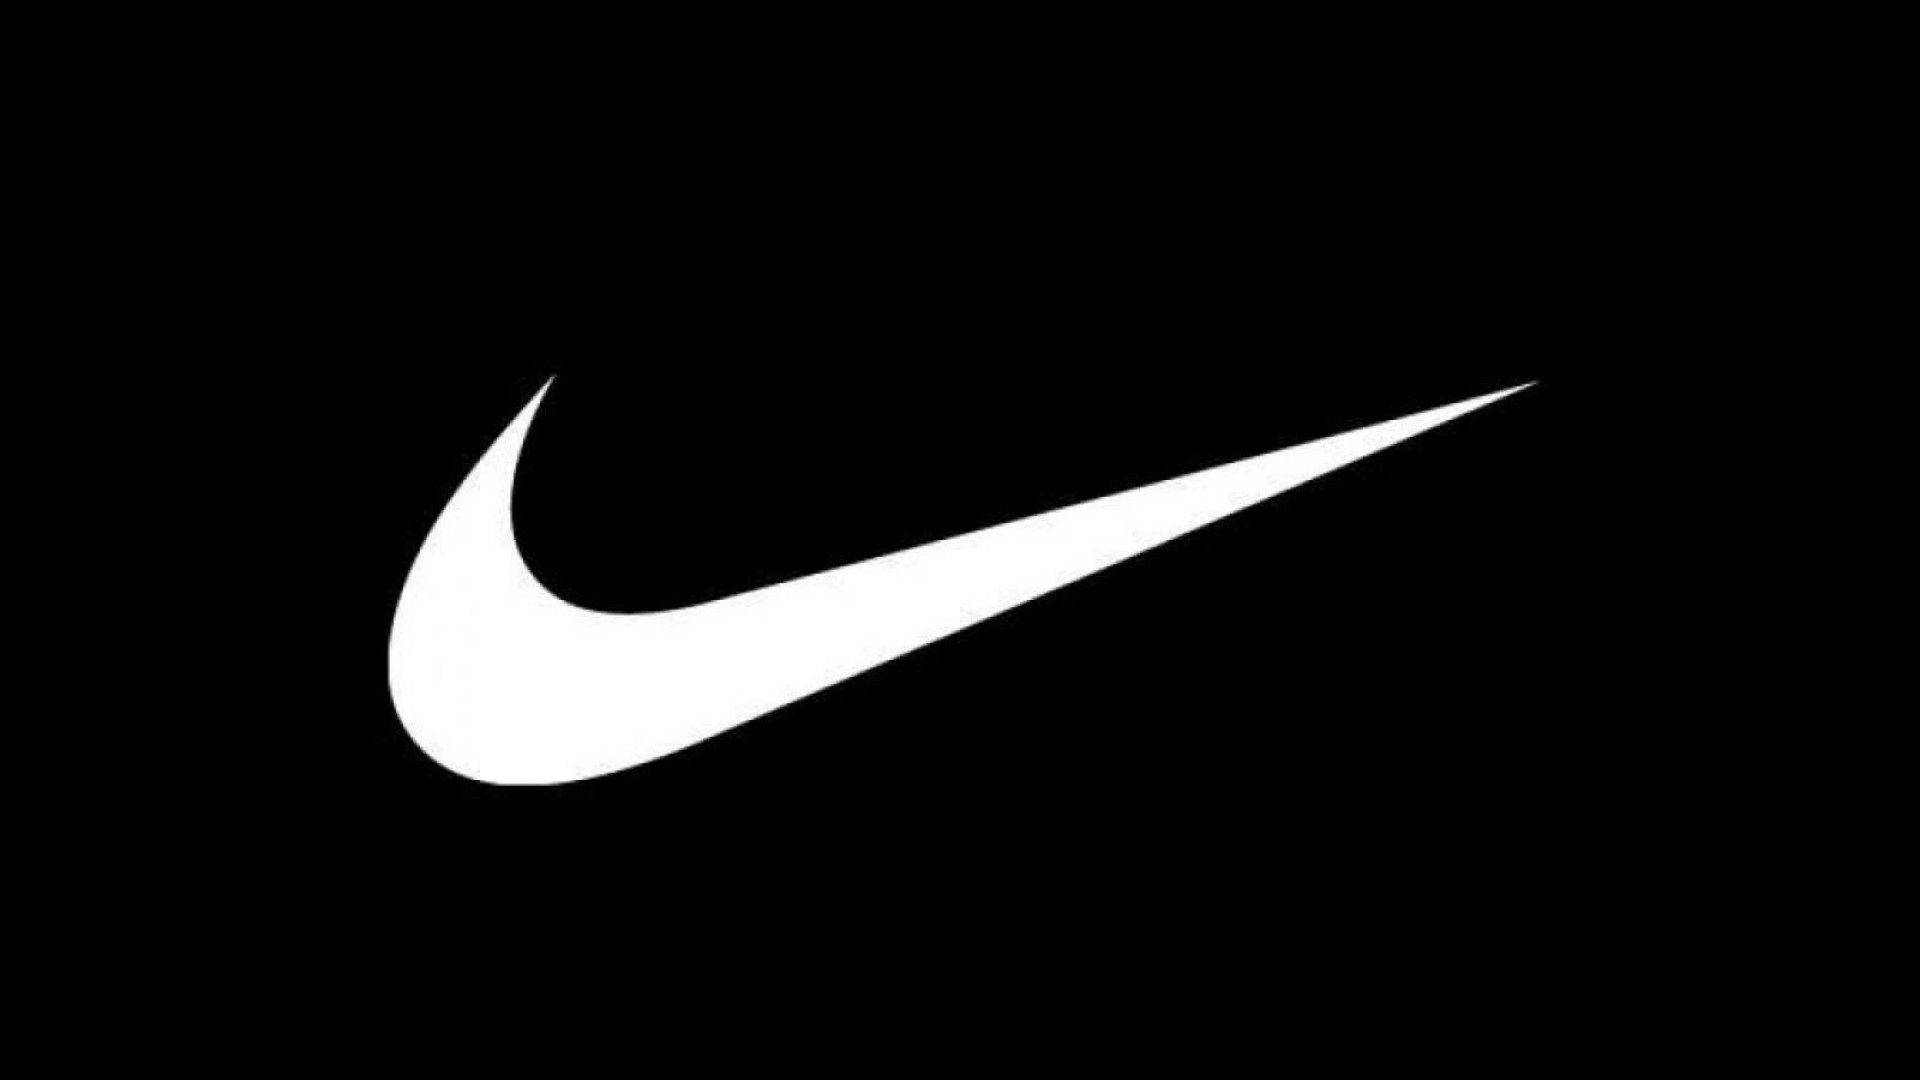 Nike wallpaper hd 1080p wallpapersafari - Nike wallpaper hd ...